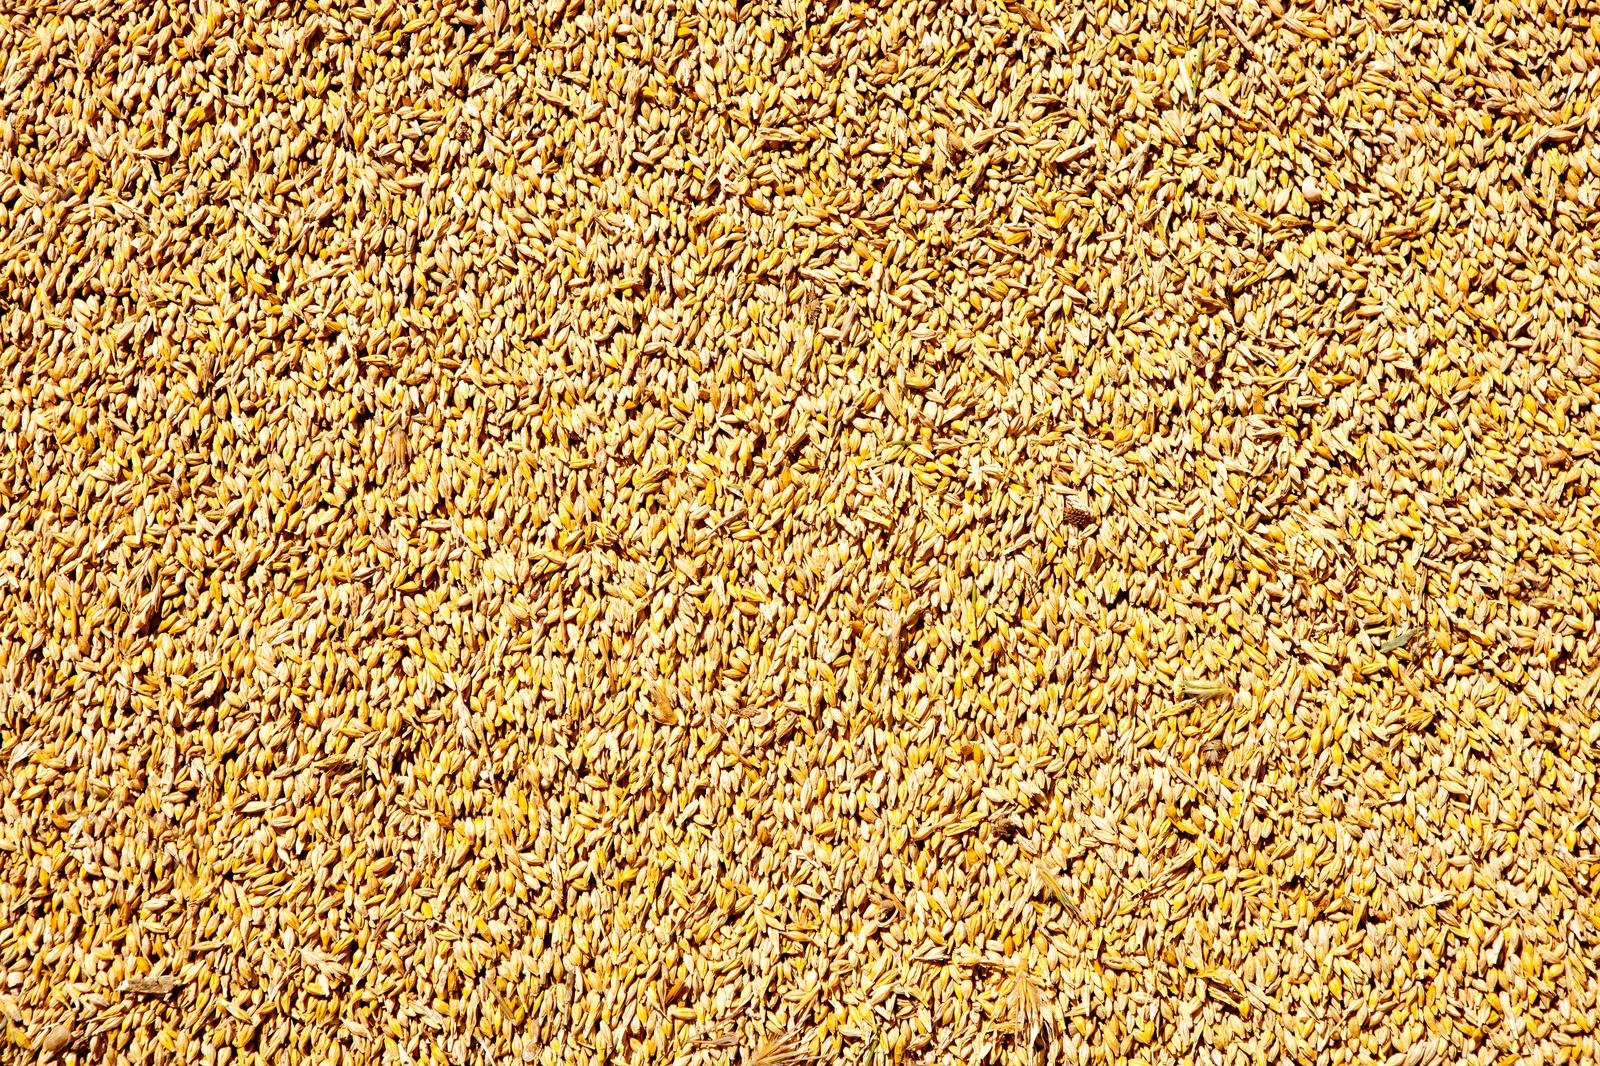 Wholesale of grain, unmanufactured tobacco, seeds and animal feeds in Põlva county